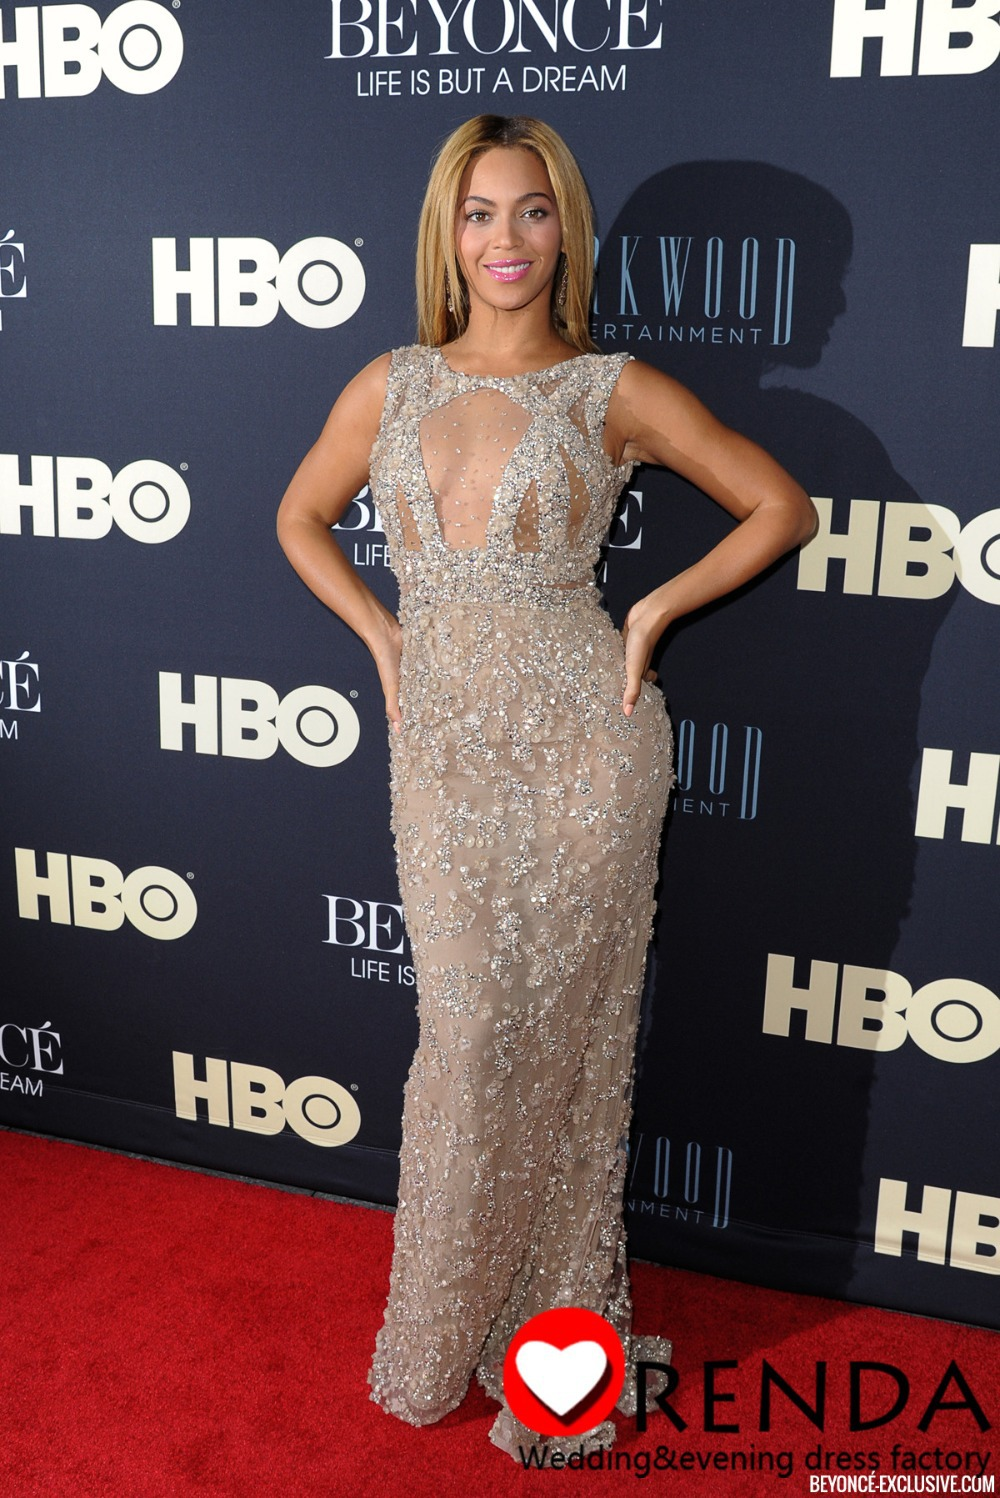 Beyonce Wearing Elie Saab Couture Sexy Mermaid Heavy Beads SeeThrough Shiny Luxurious Prom Celebrity Dresses 2013-in Prom Dresses from Apparel & Accessories on Aliexpress.com